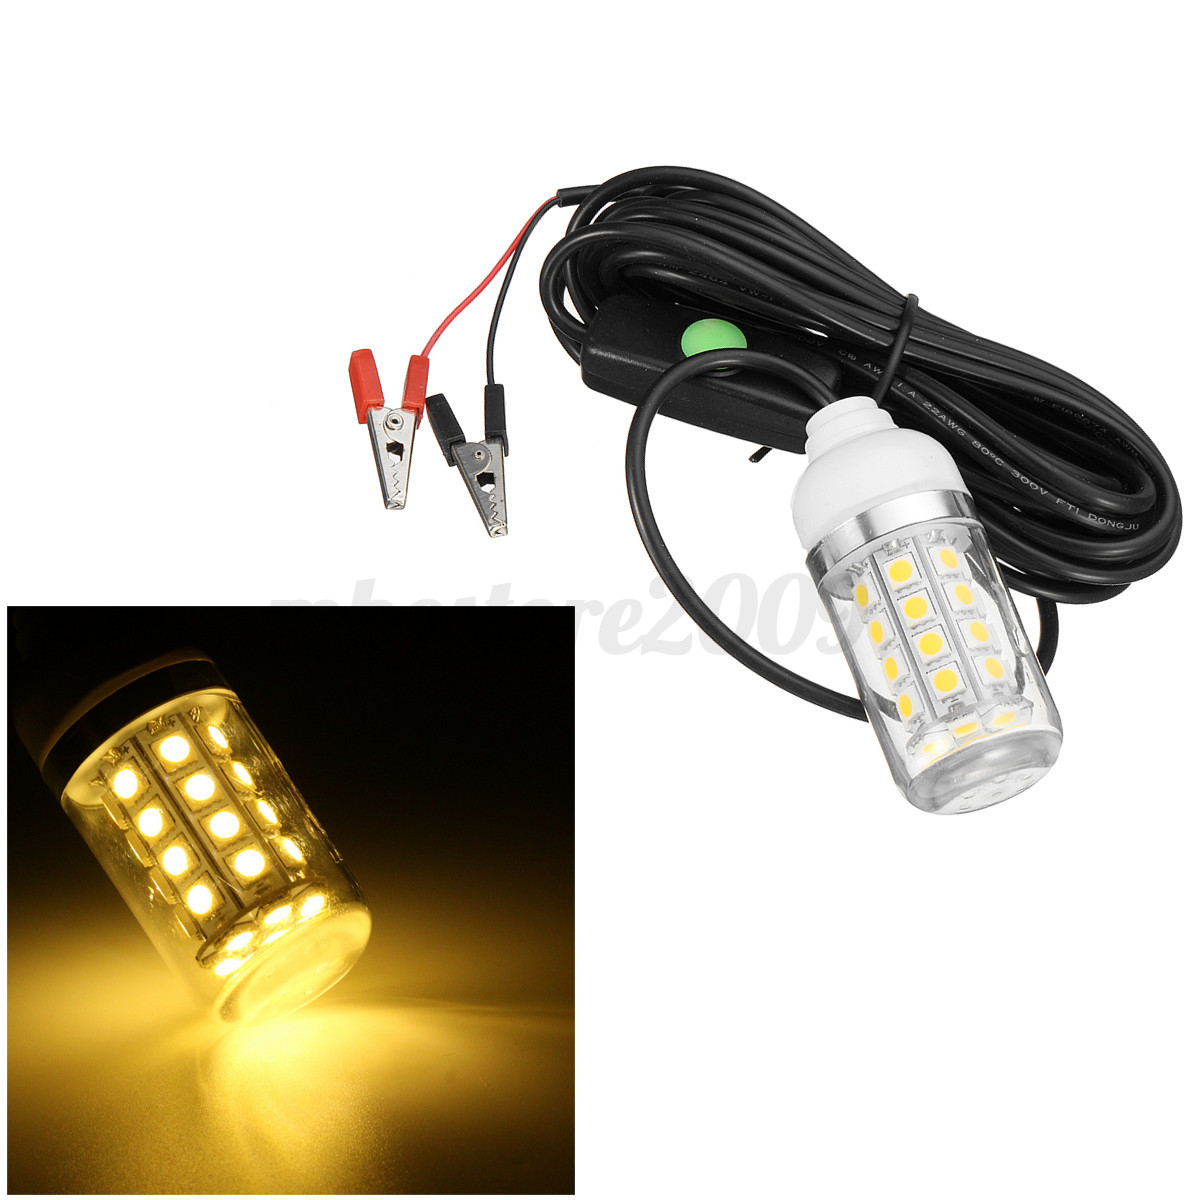 12v 36 led underwater submersible night fishing light shad for Submersible fishing light